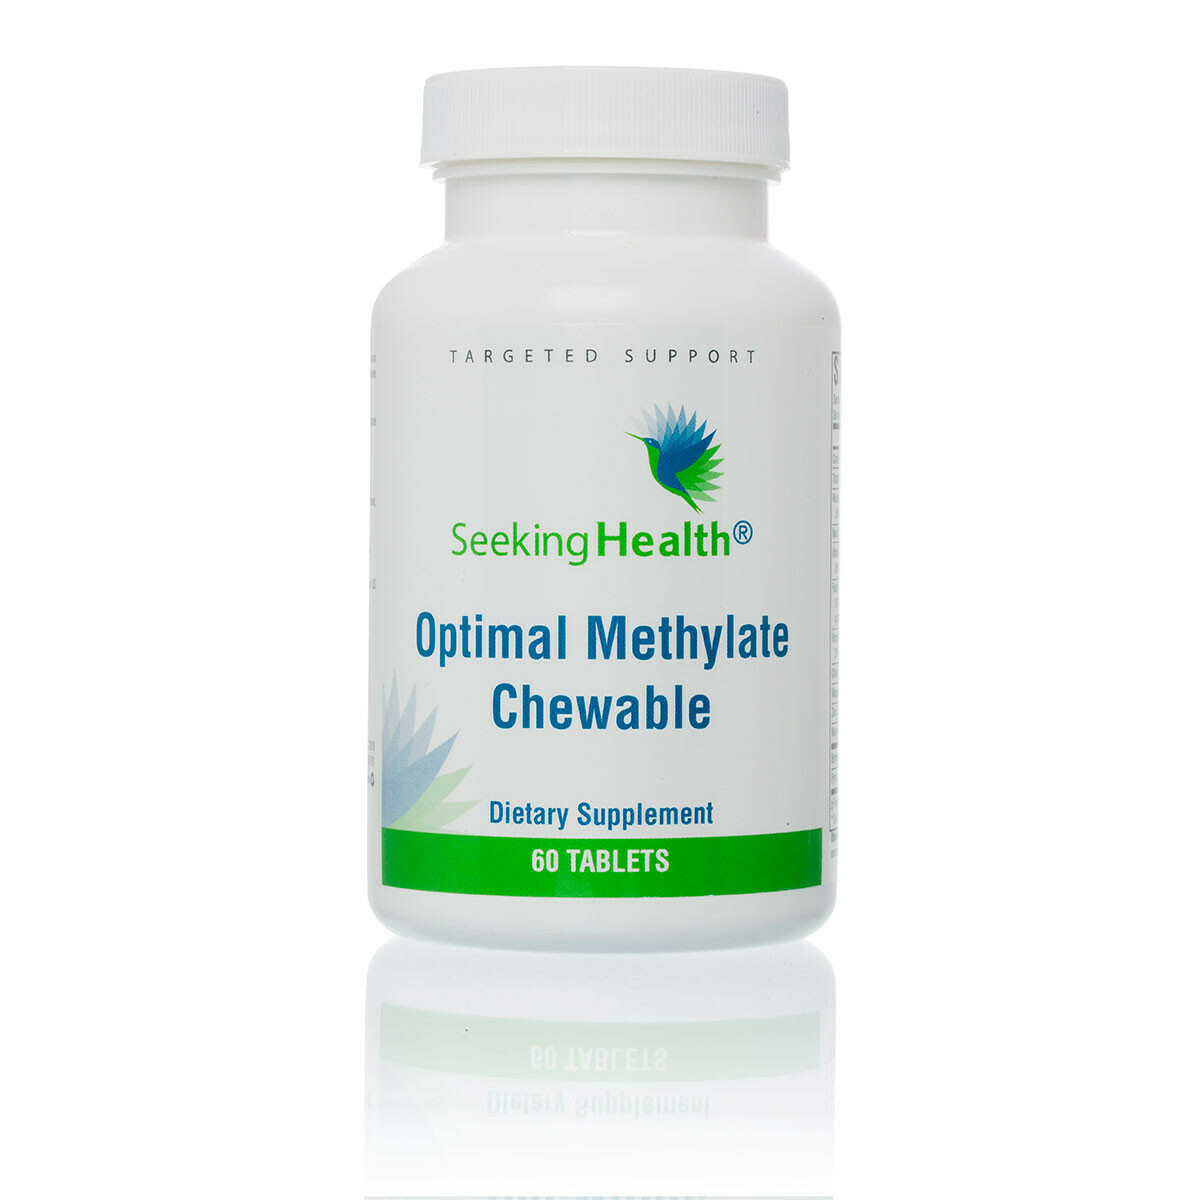 OPTIMAL METHYLATE CHEWABLE - 60 TABLETS,Seeking Health